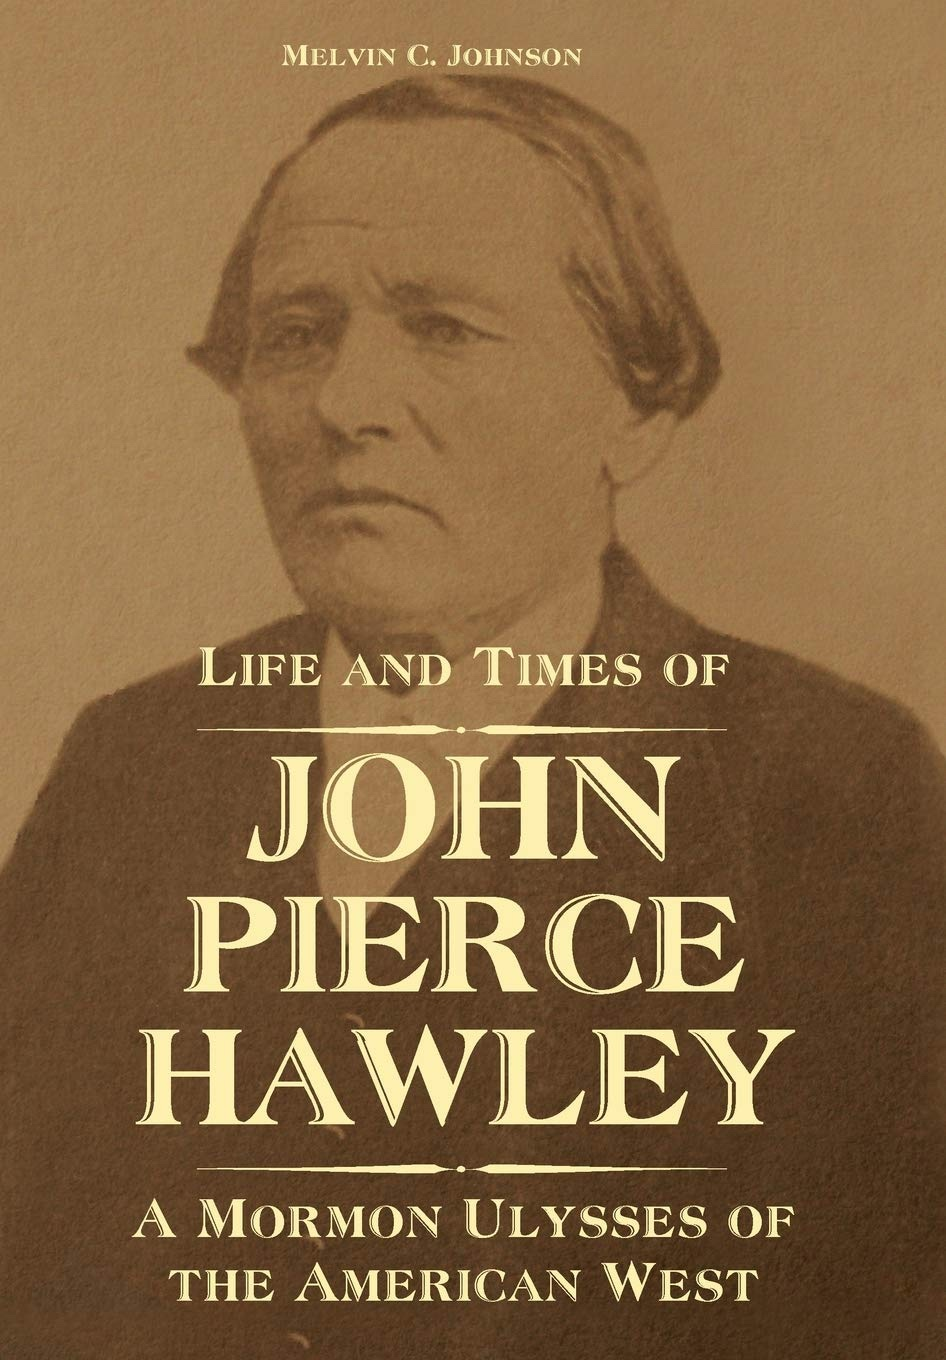 Image for Life and Times of John Pierce Hawley A Mormon Ulysses of the American West